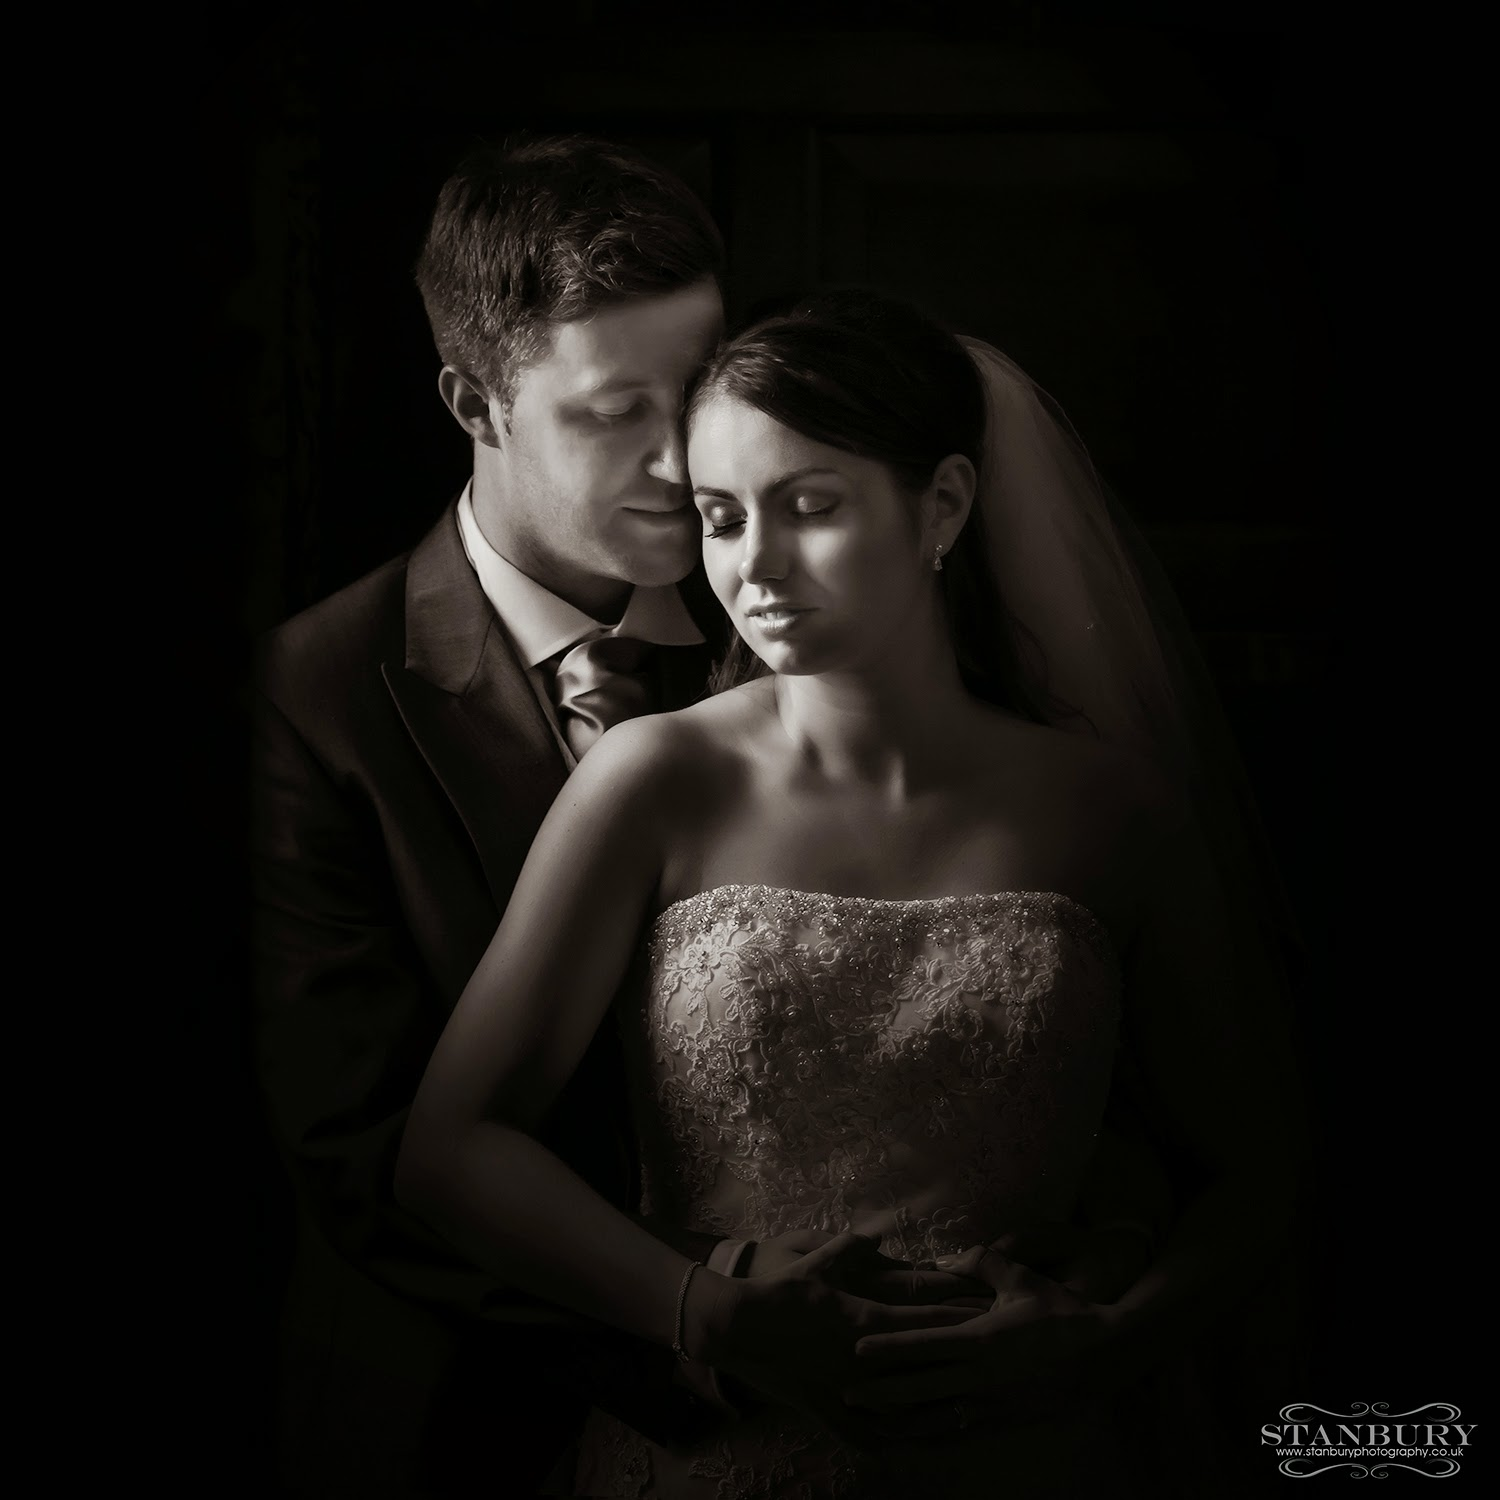 Simon Larens Wedding Day Was Filled With Love And Coming To The Blog Soon Heres A Sneak Peek At Just How Much They Are In DJ Xx